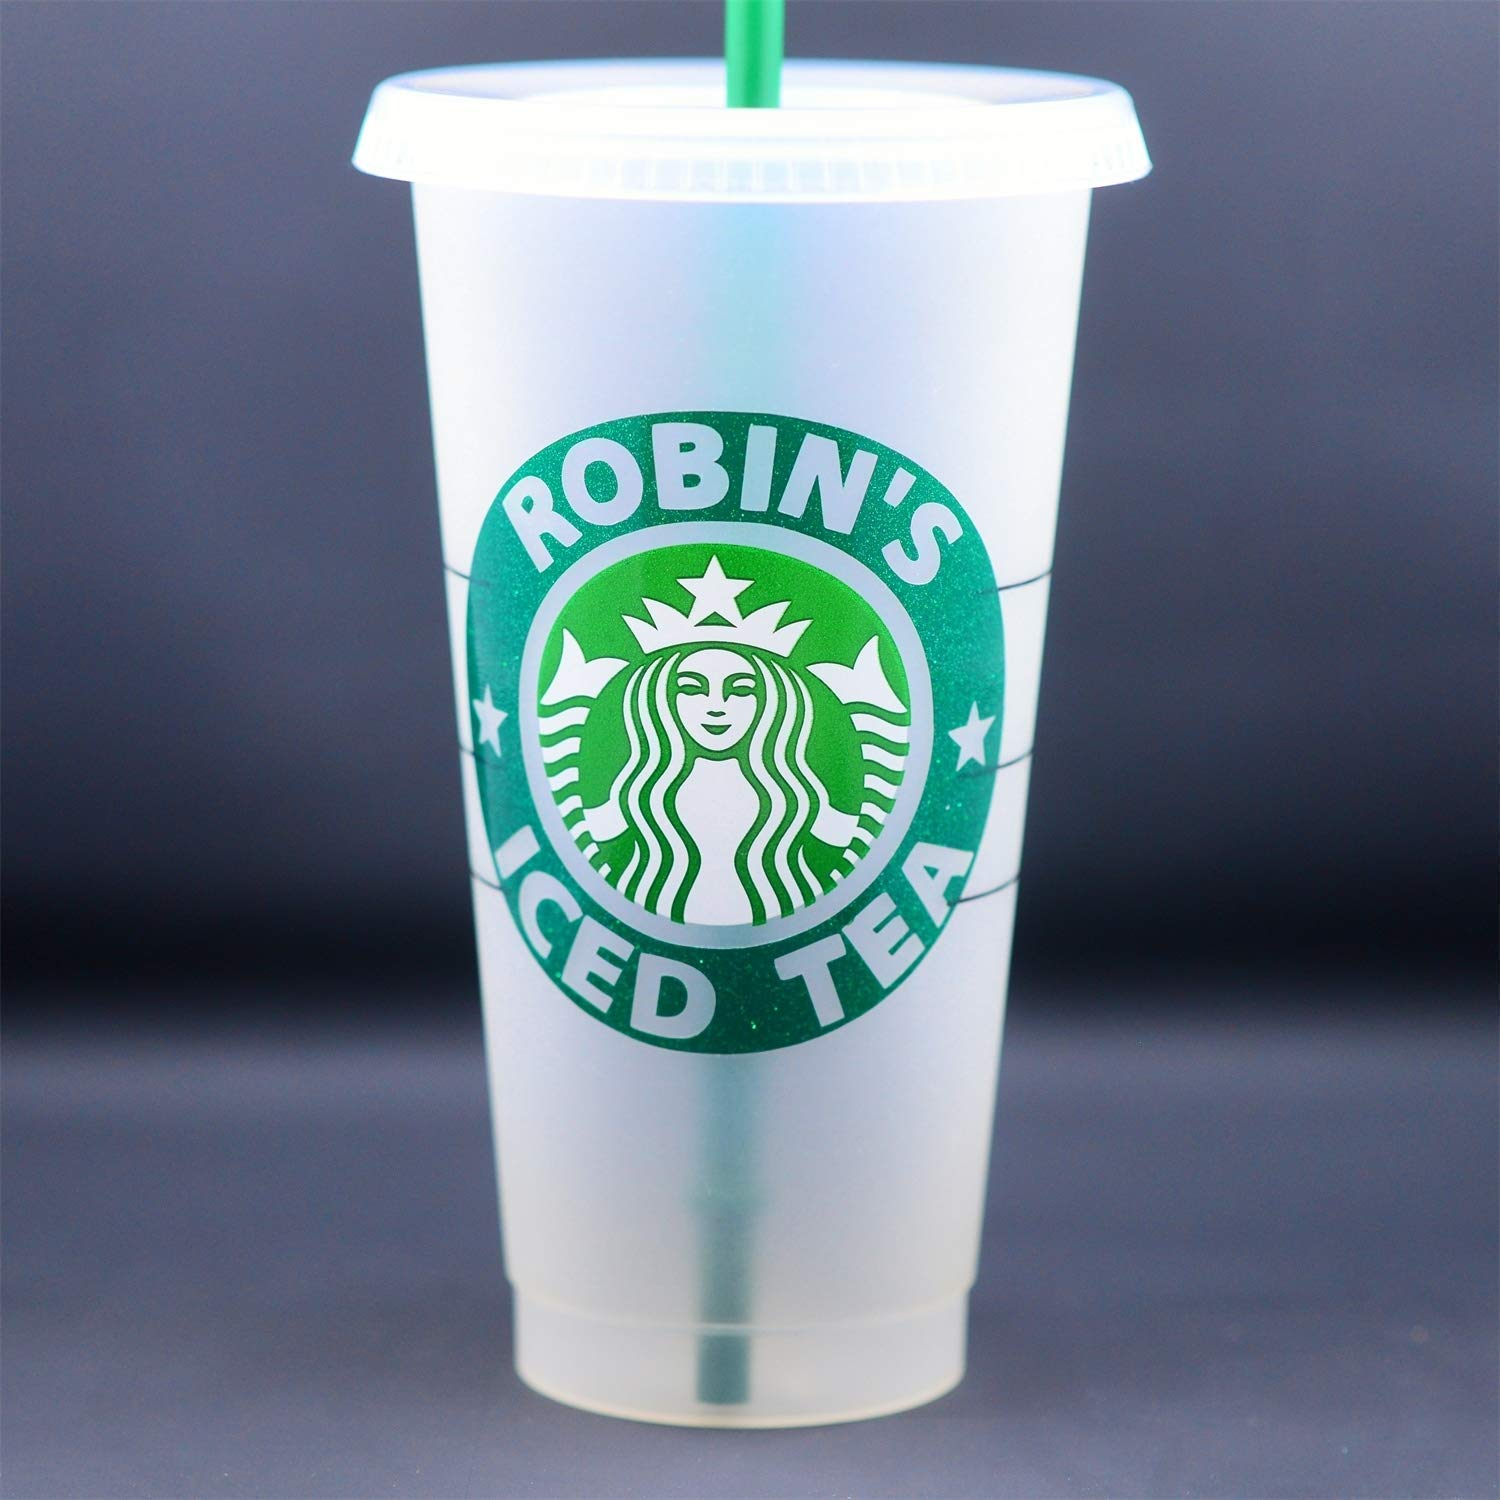 Personalized Starbucks Cup Frosted Venti 24 Oz To Go Cup Tumbler Glitter Or Matte Ships Free Custom Starbucks Lover Gift You Name It